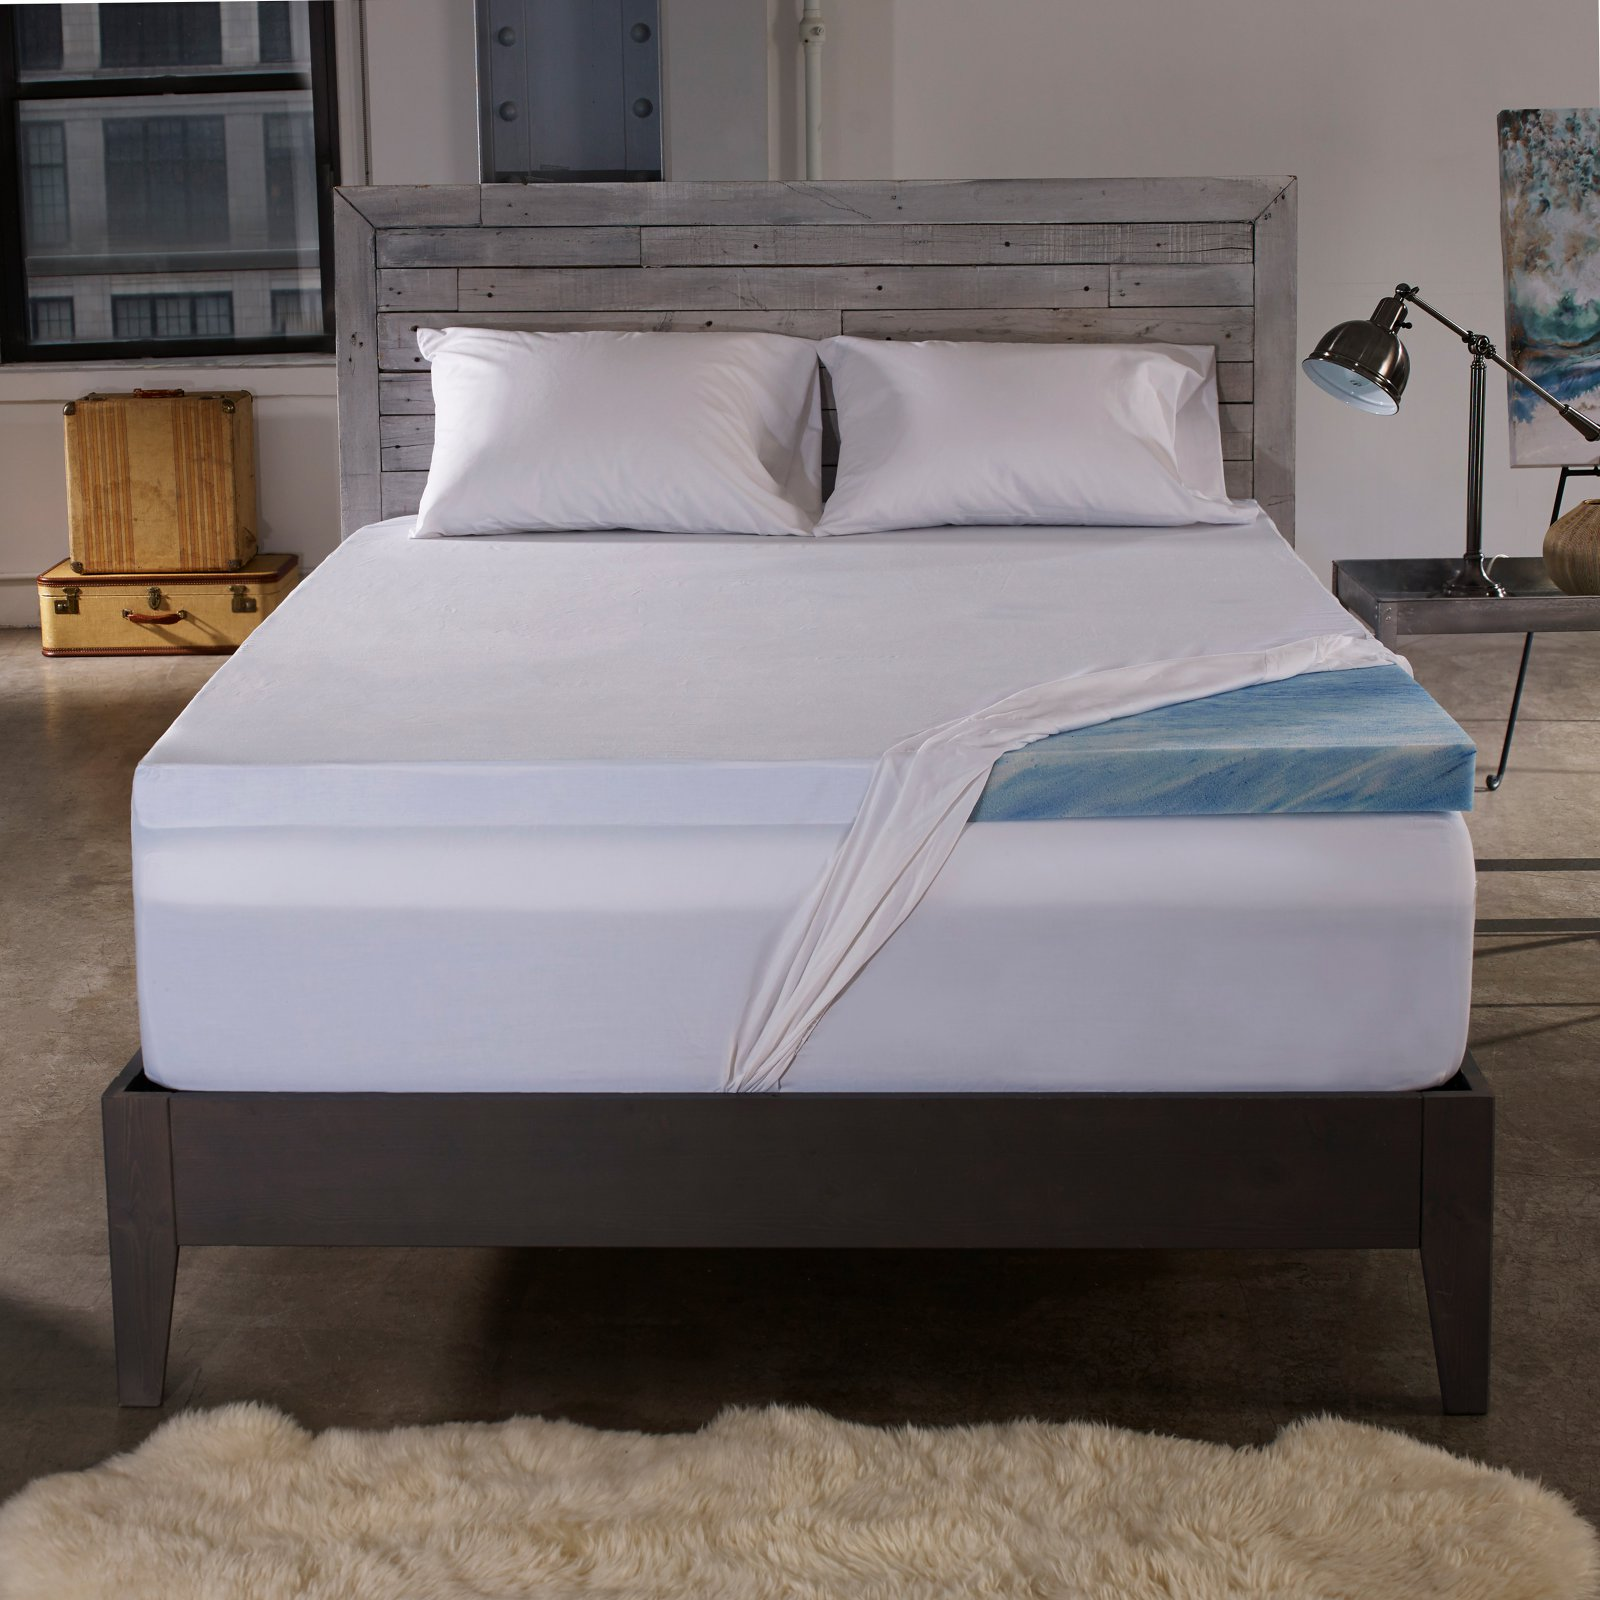 Sleep Innovations 2.5 in. Gel Memory Foam Mattress Topper with Cover